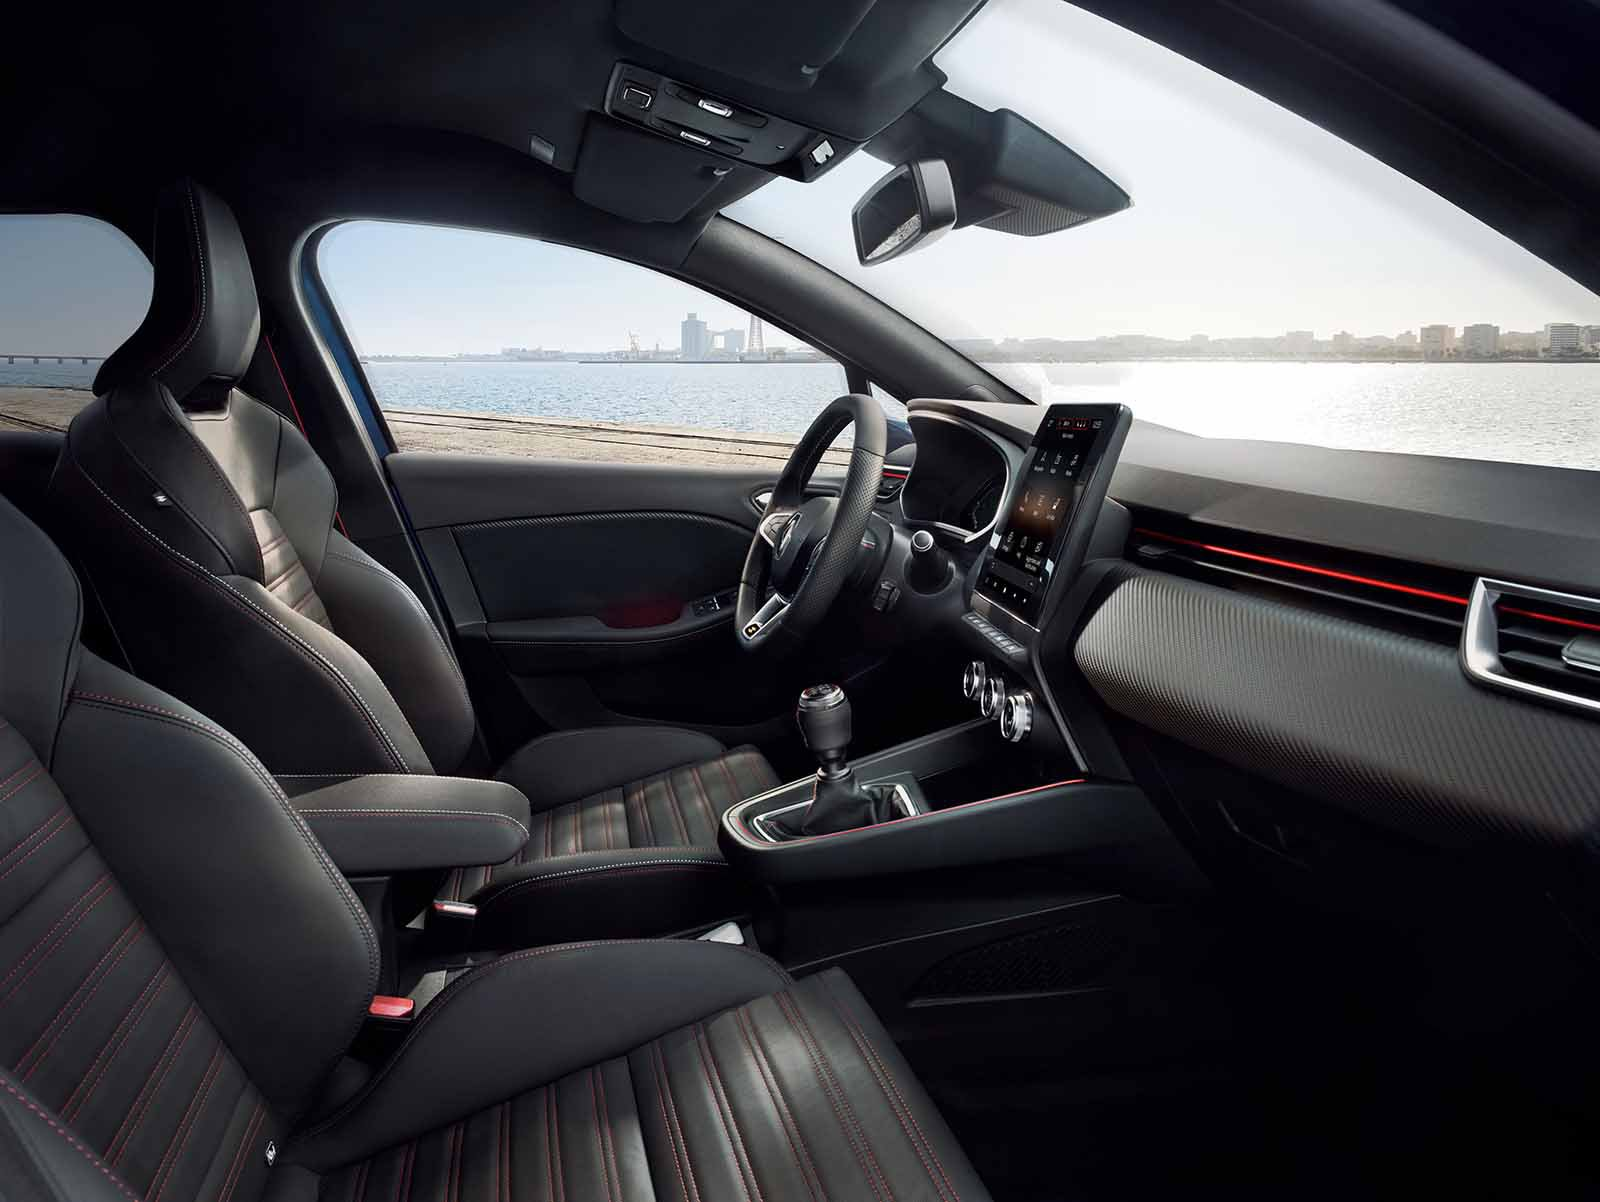 Renault Clio 2019 LHD launch car front seats